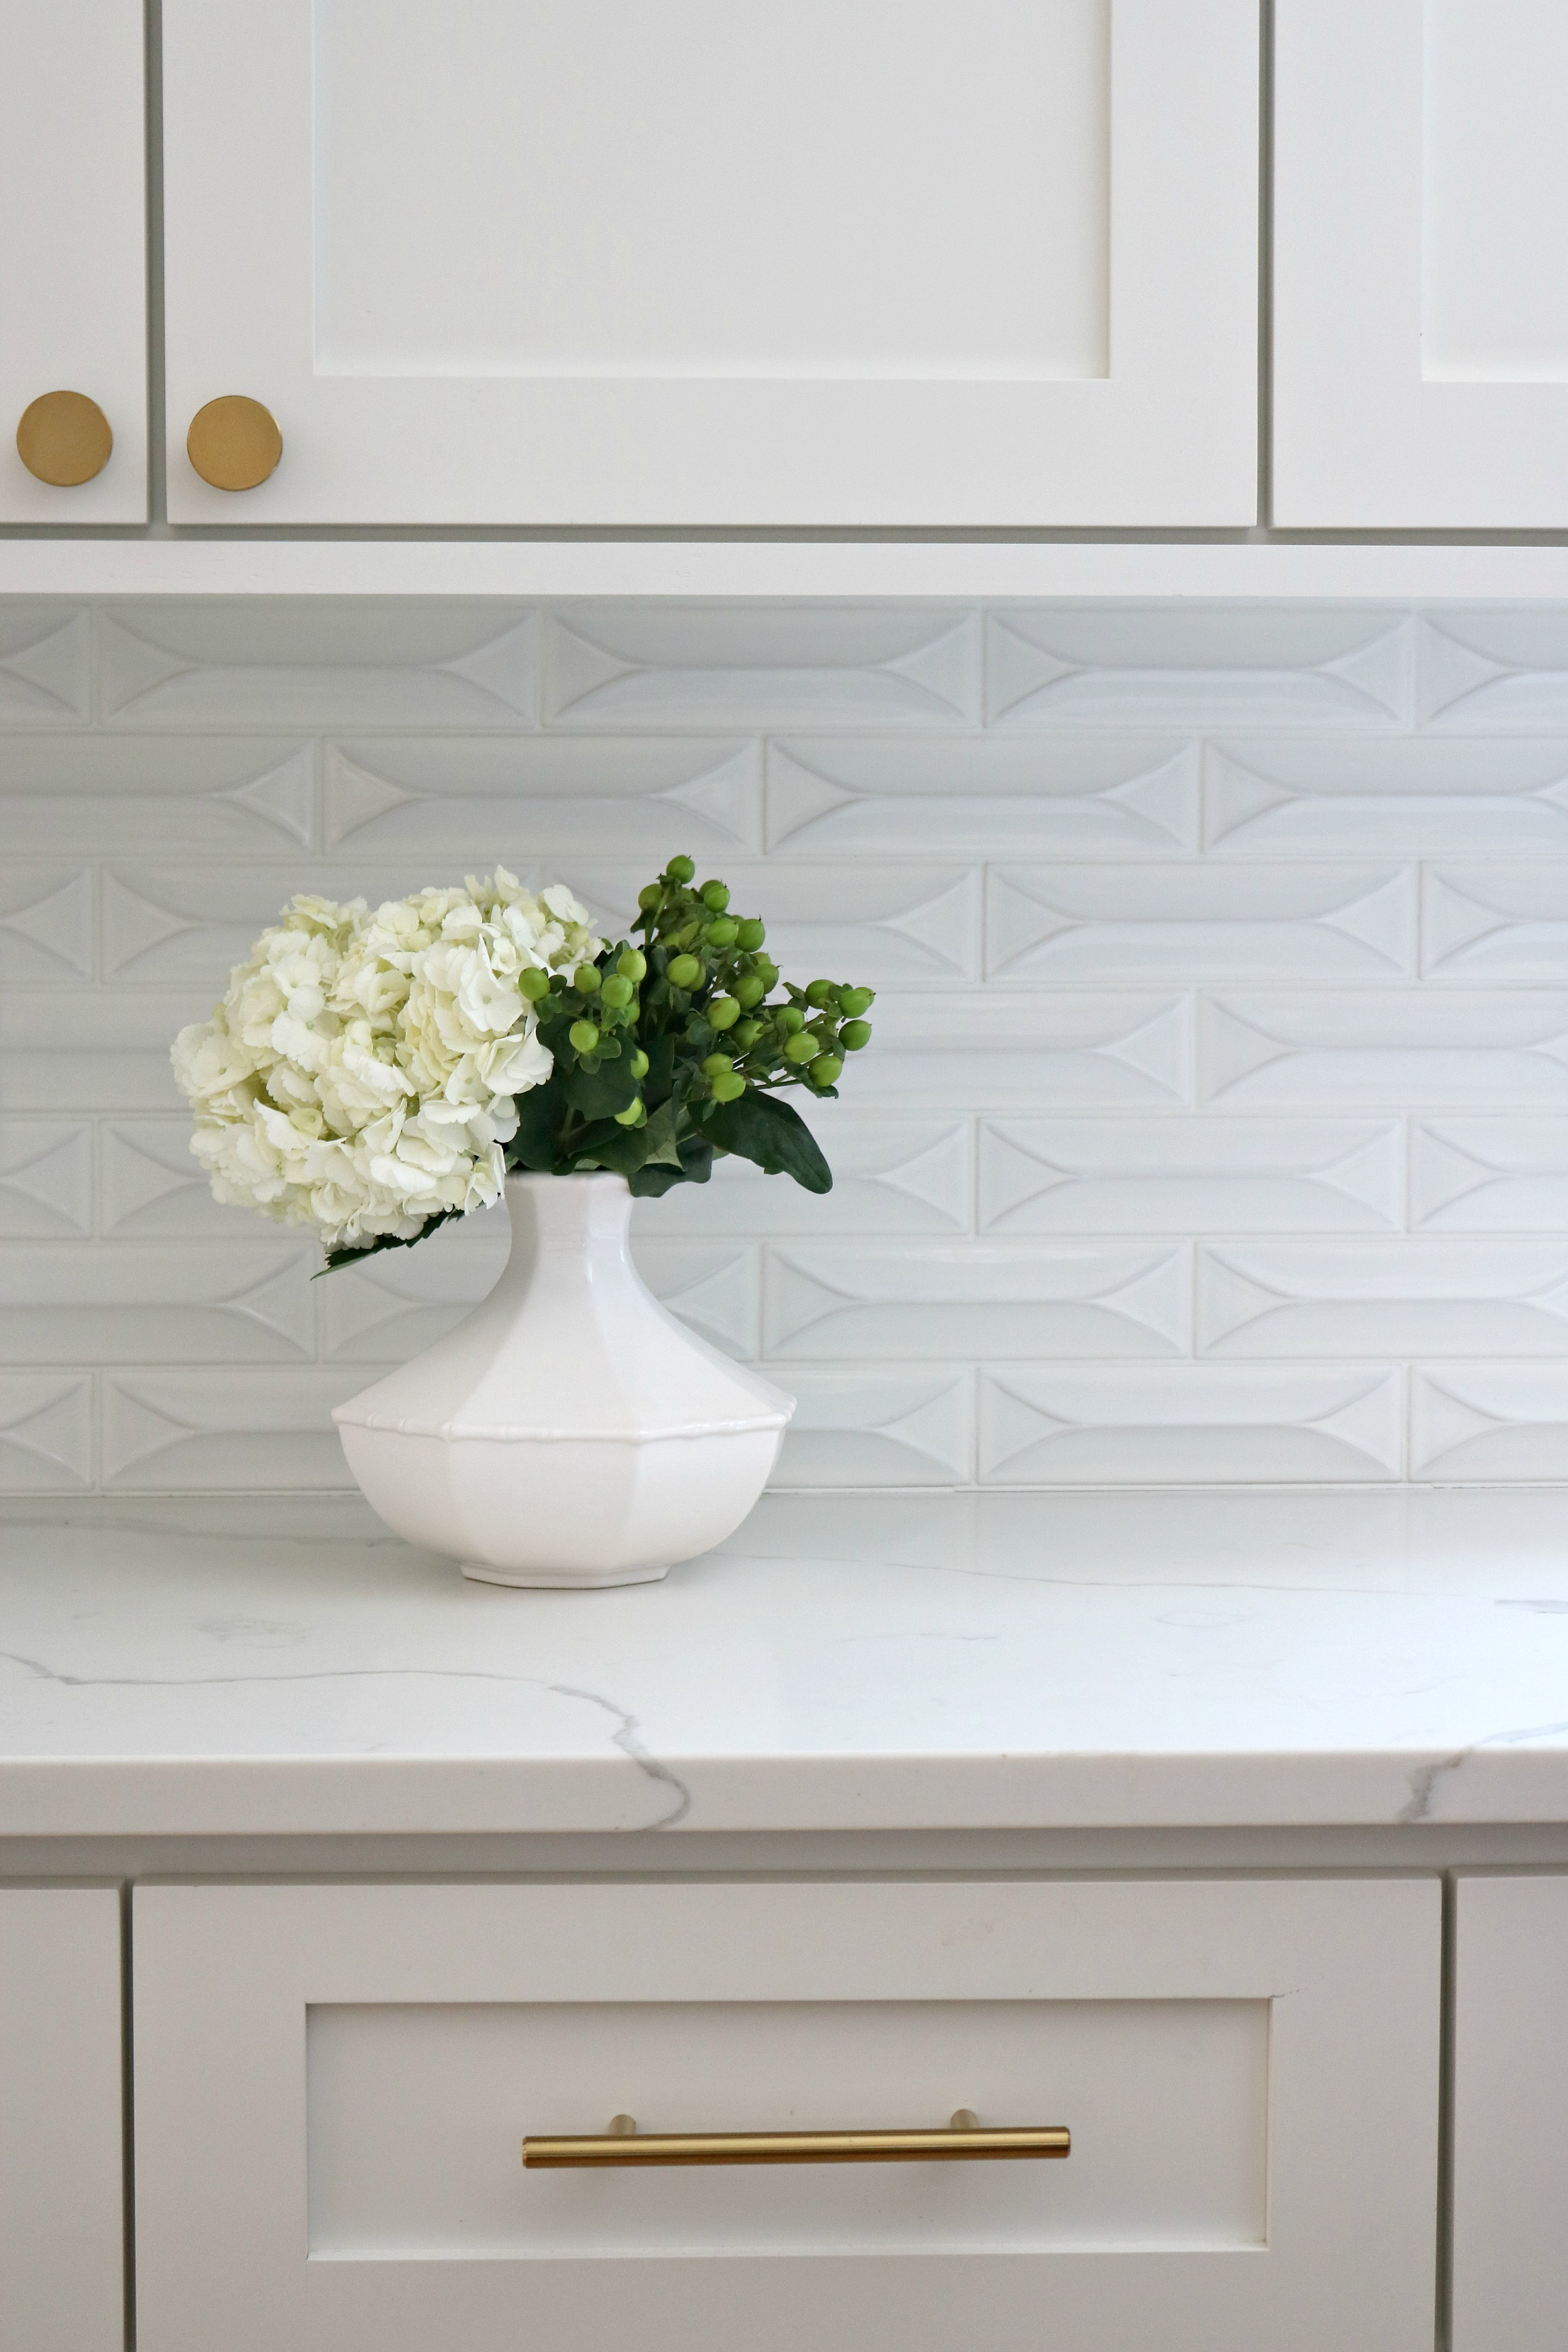 Kelle Dame Interiors Backsplash wide.jpg